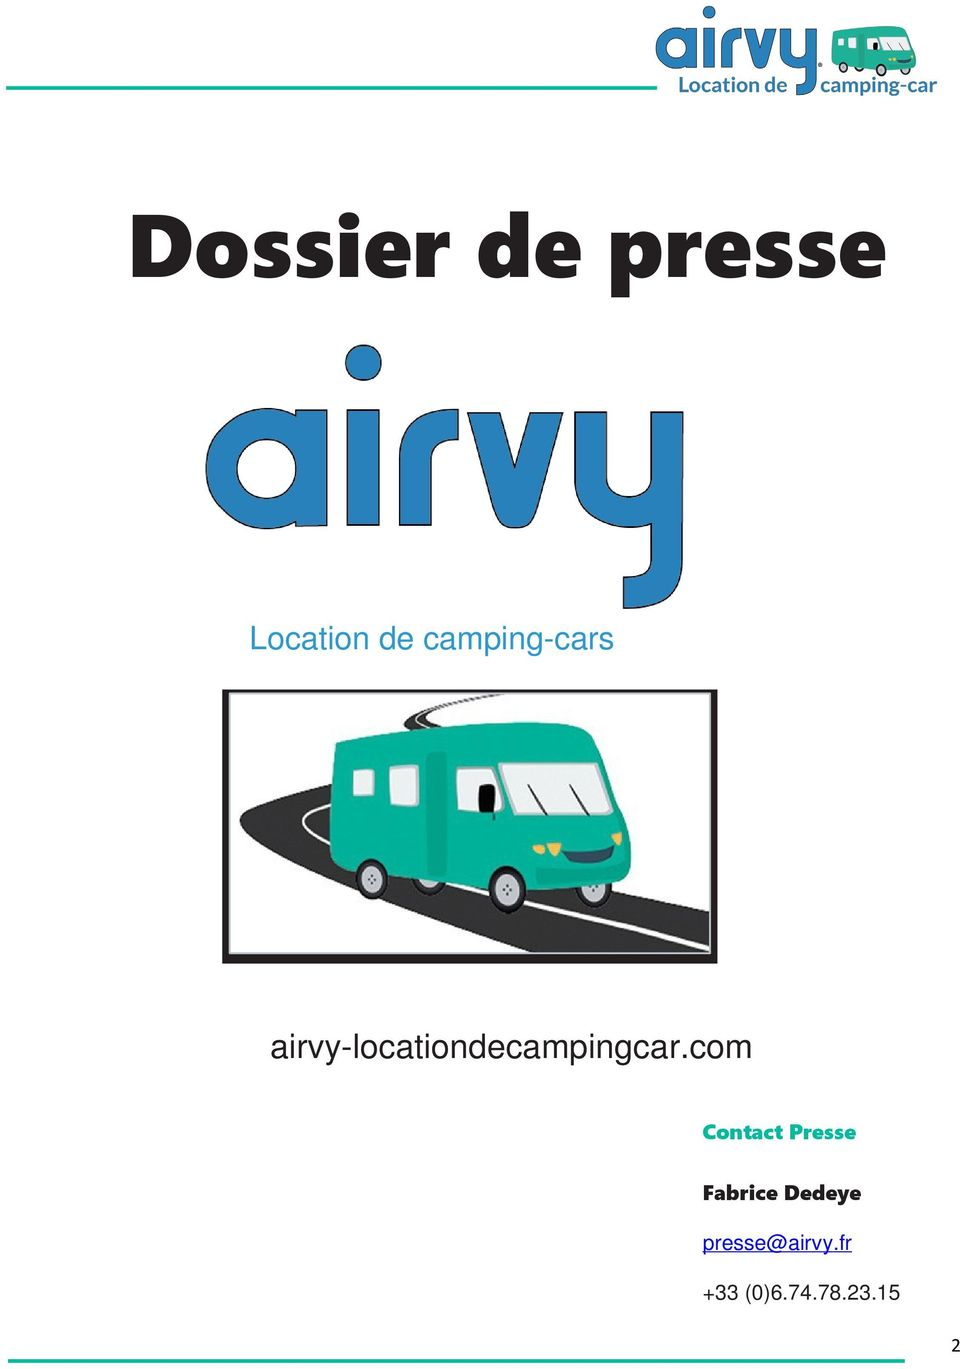 airvy-locationdecampingcar.